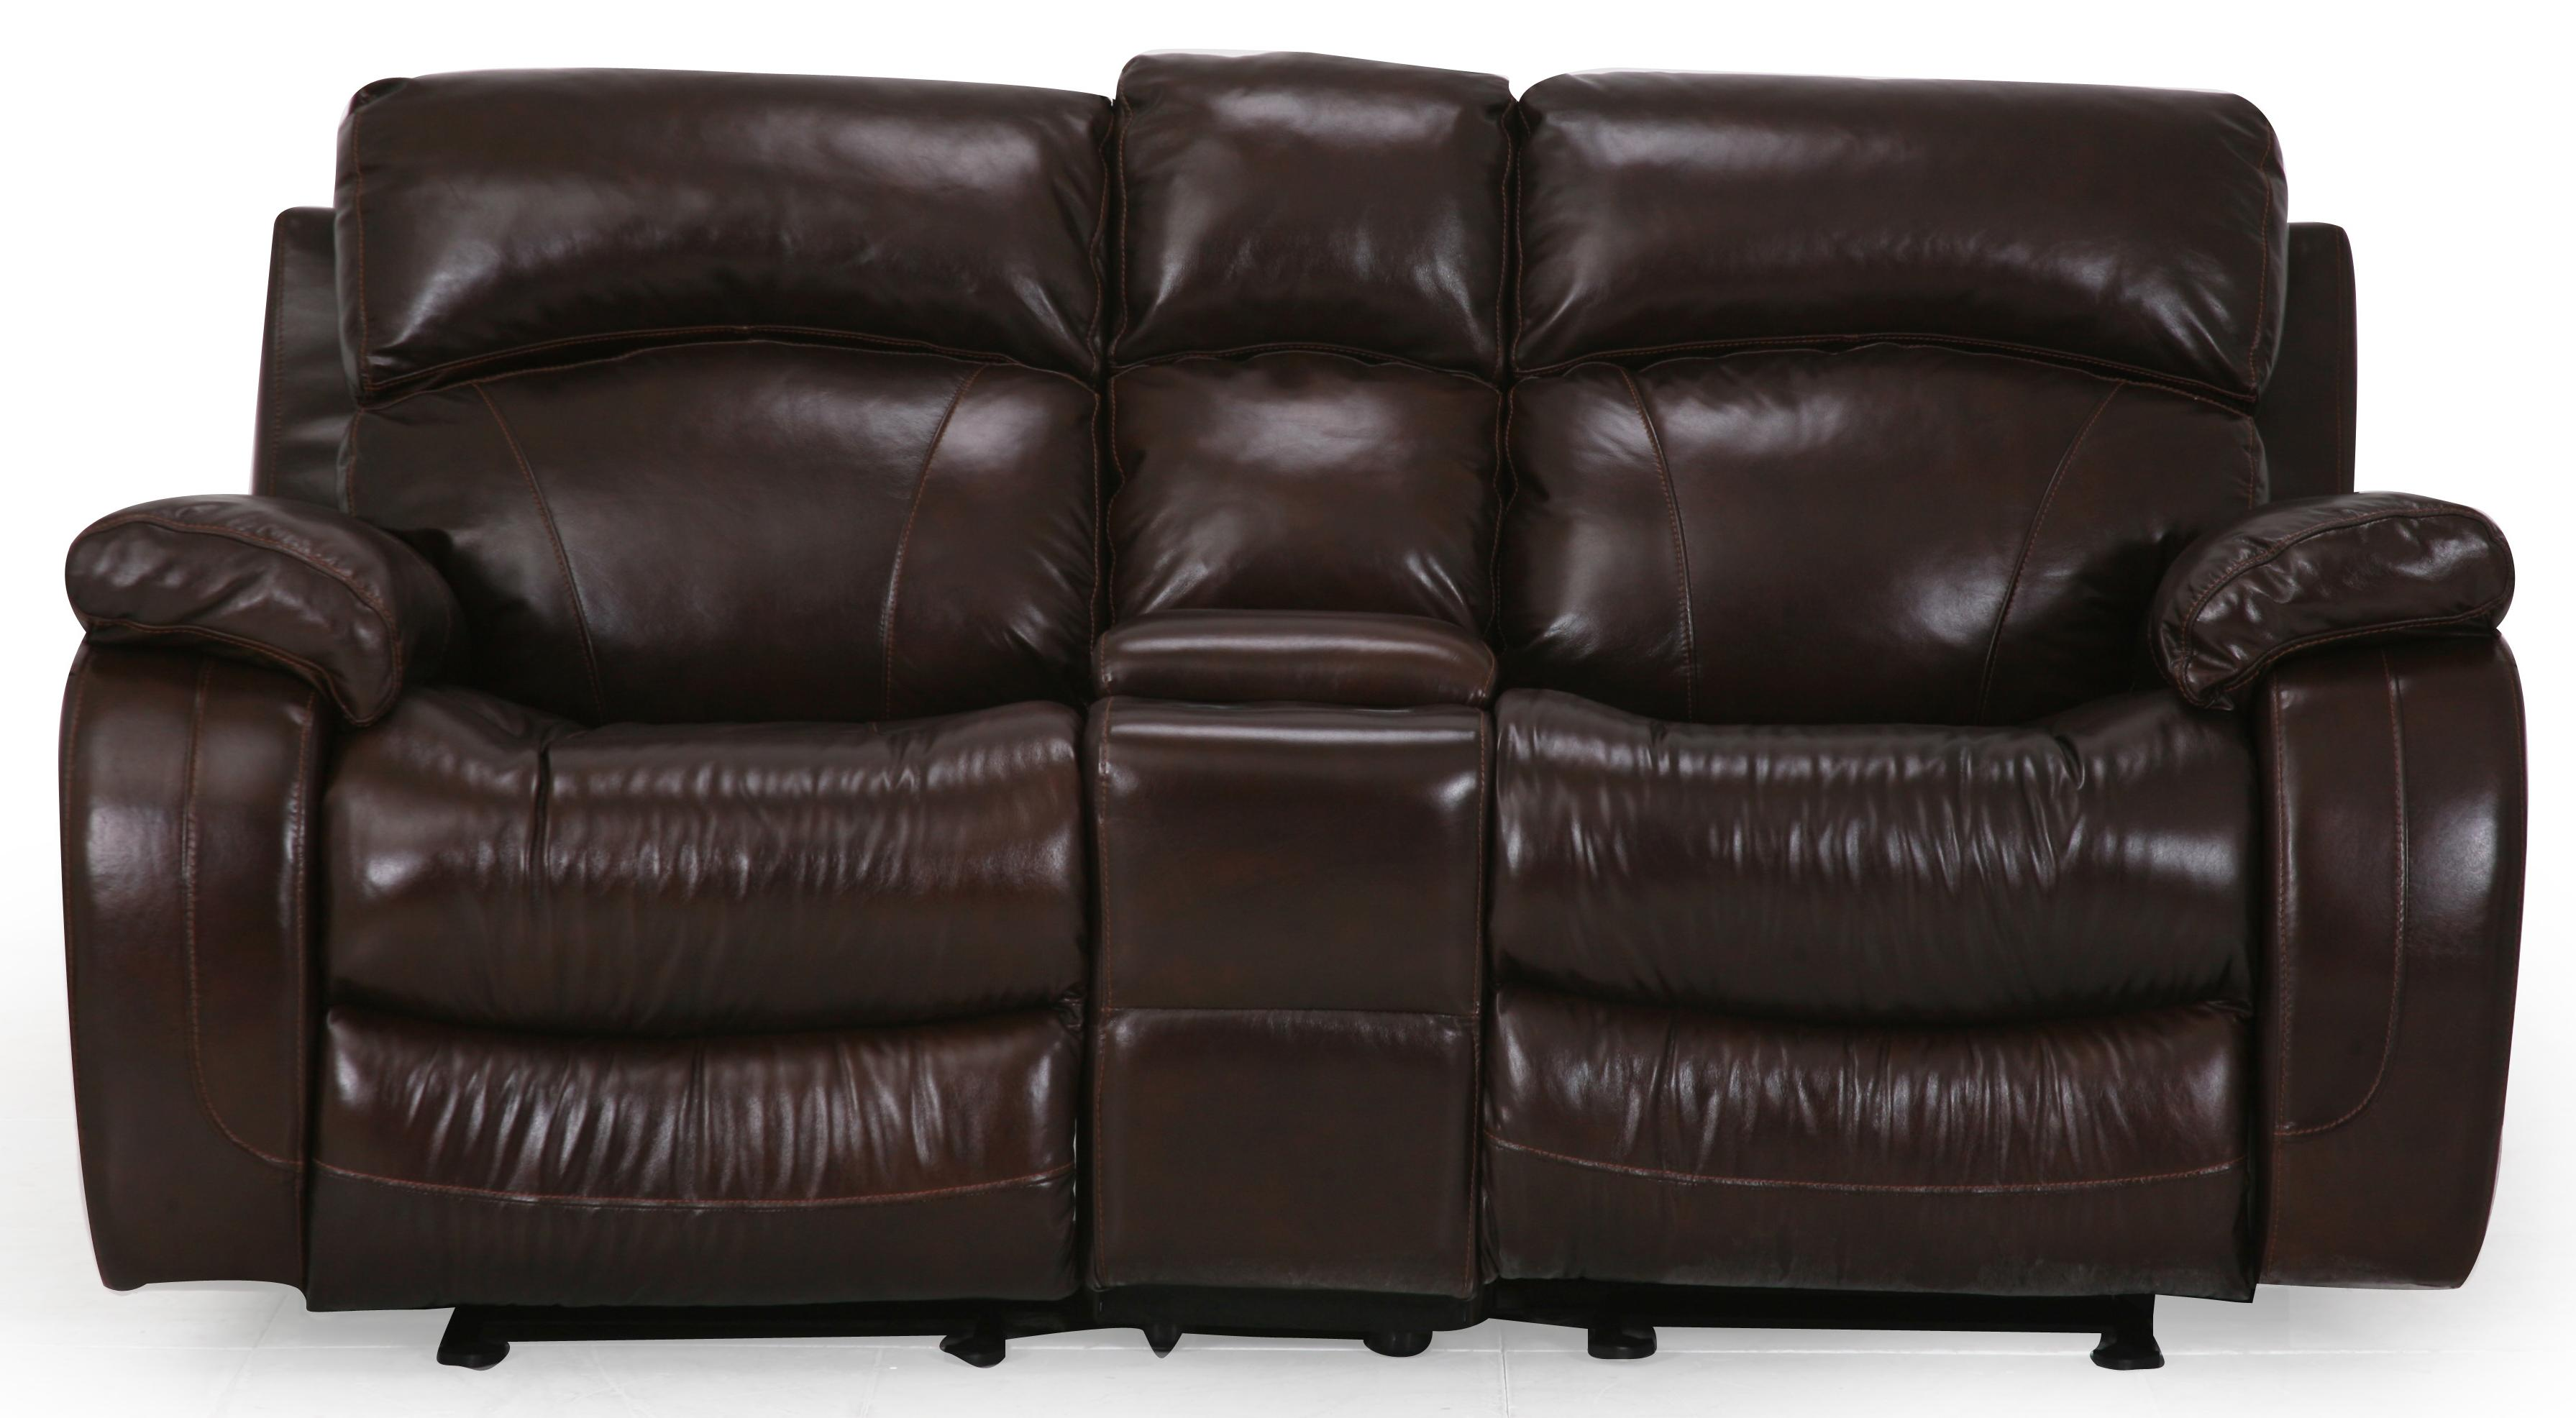 UXW8812M Reclining Console Loveseat by Cheers Sofa at Lagniappe Home Store